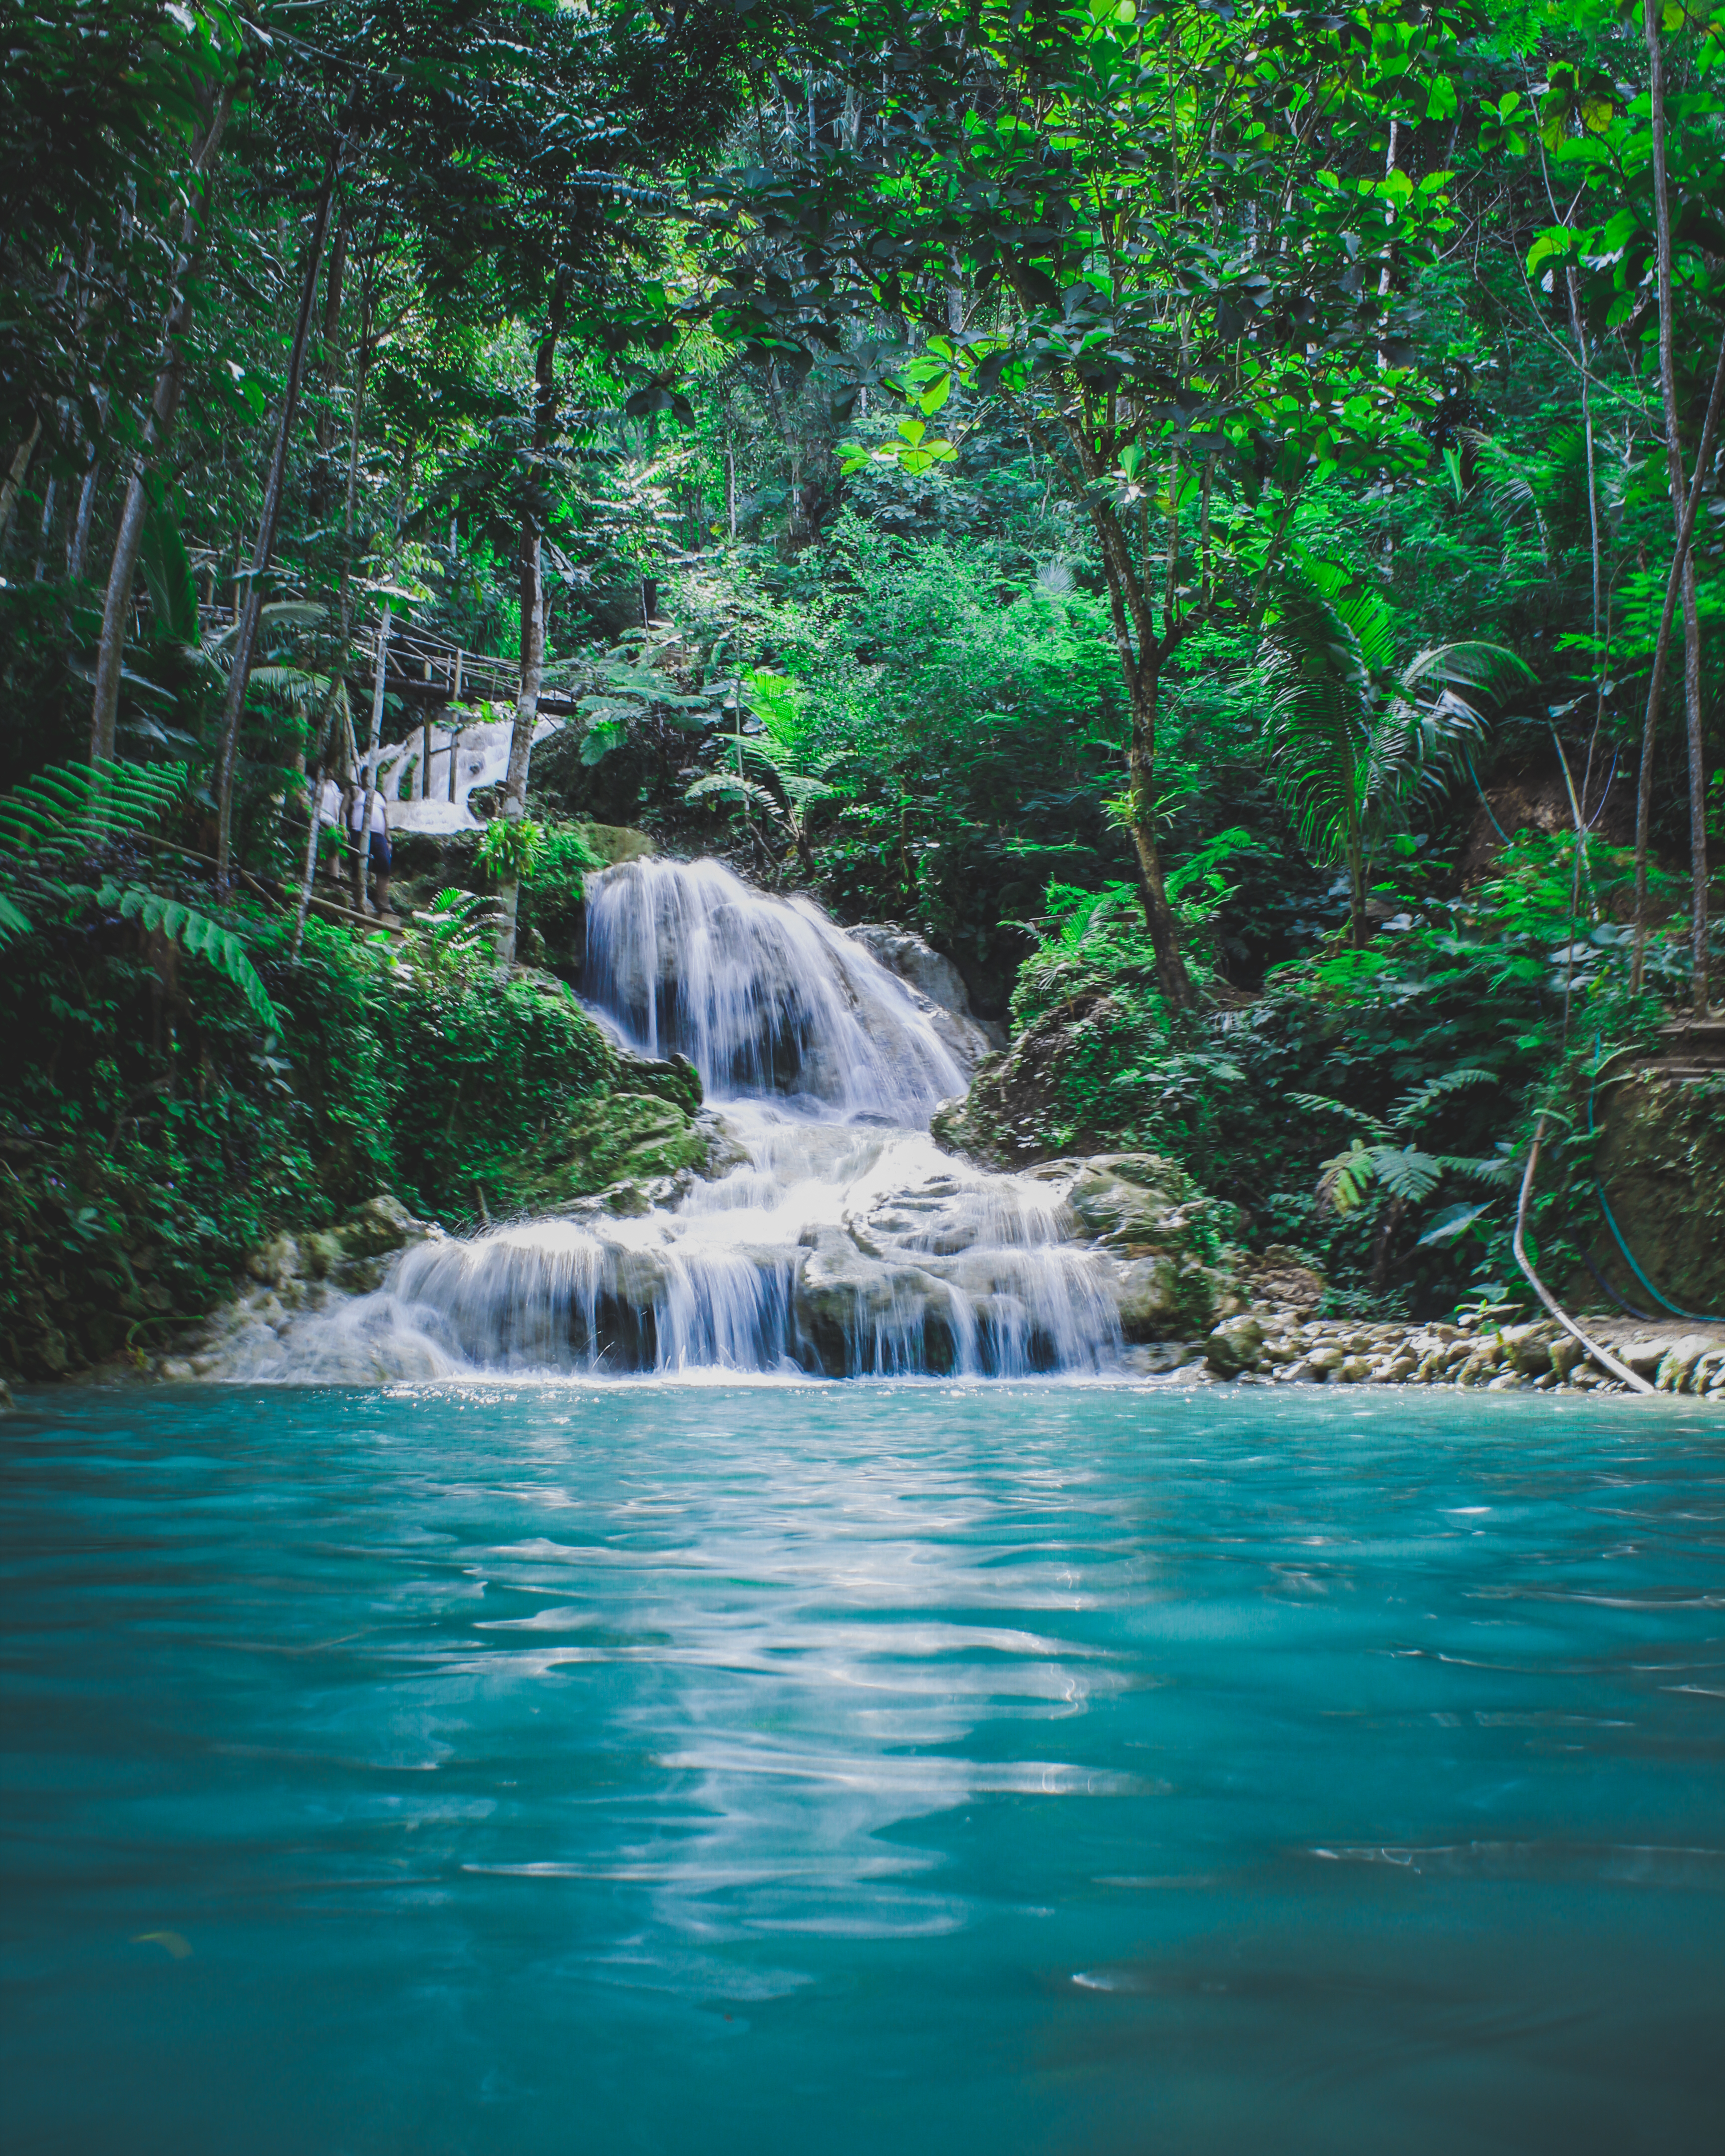 Iphone 6 Wallpaper Size Free Stock Photo Of Forest Jungle Nature